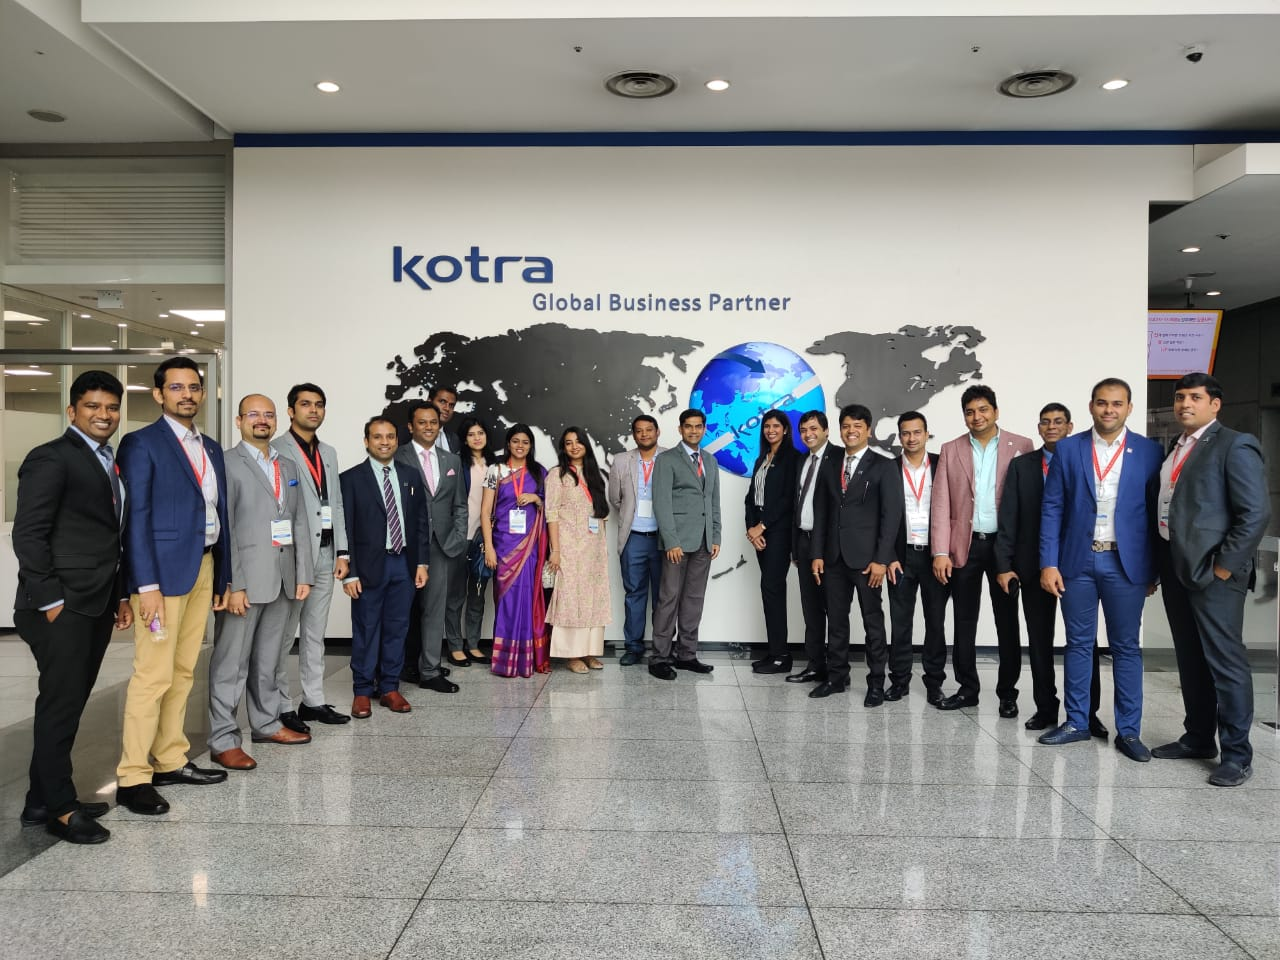 Yi Global Excellence Mission to the Republic of Korea 25-30 August 2019  Visit to KOTRA and Special Interaction with Mr Sang Mook Kim,Vice President KOTRA